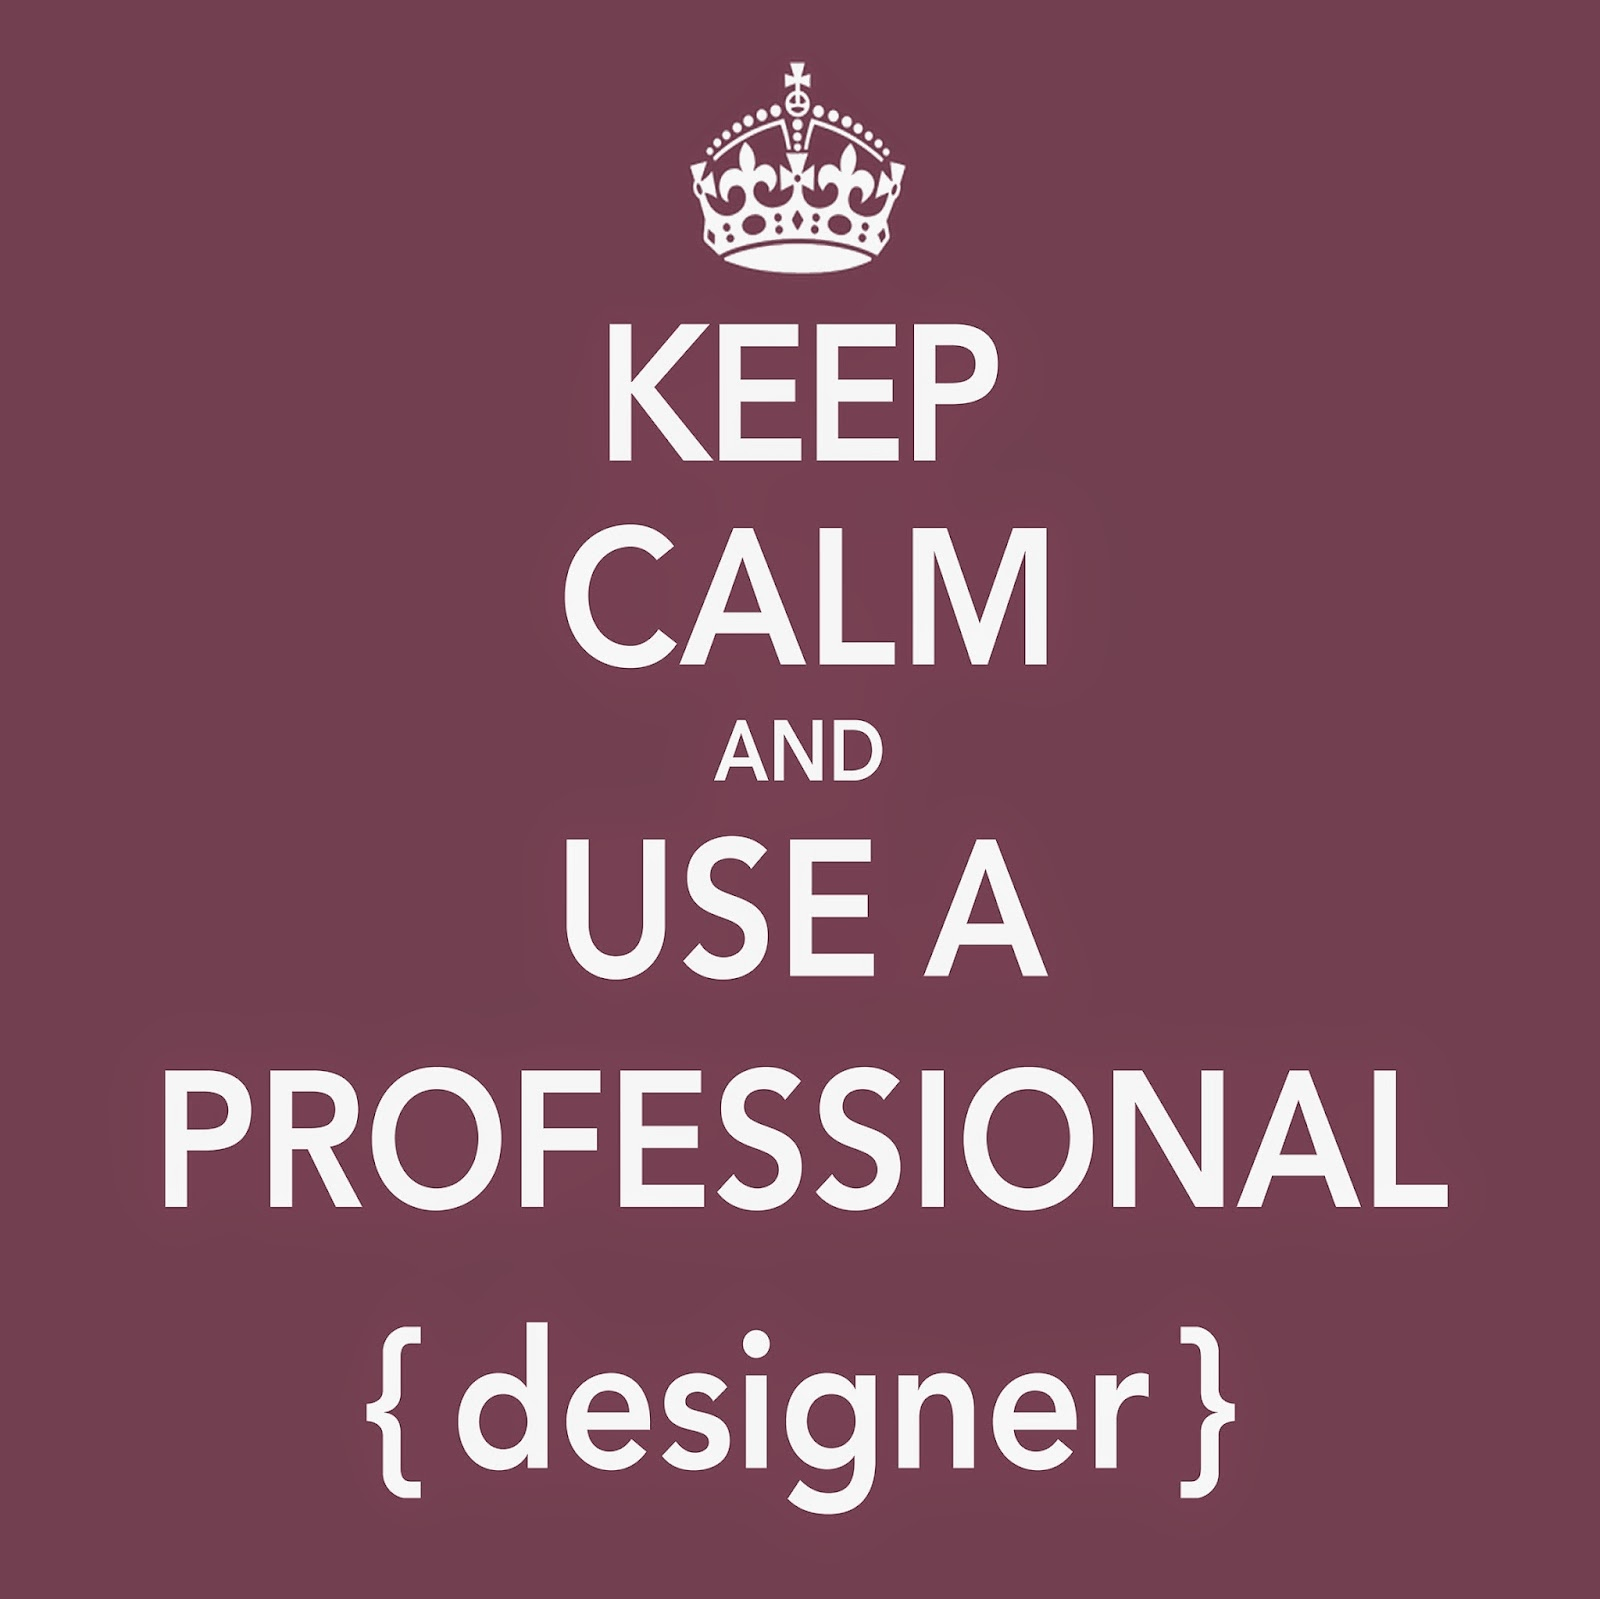 keep calm and use a professional designer